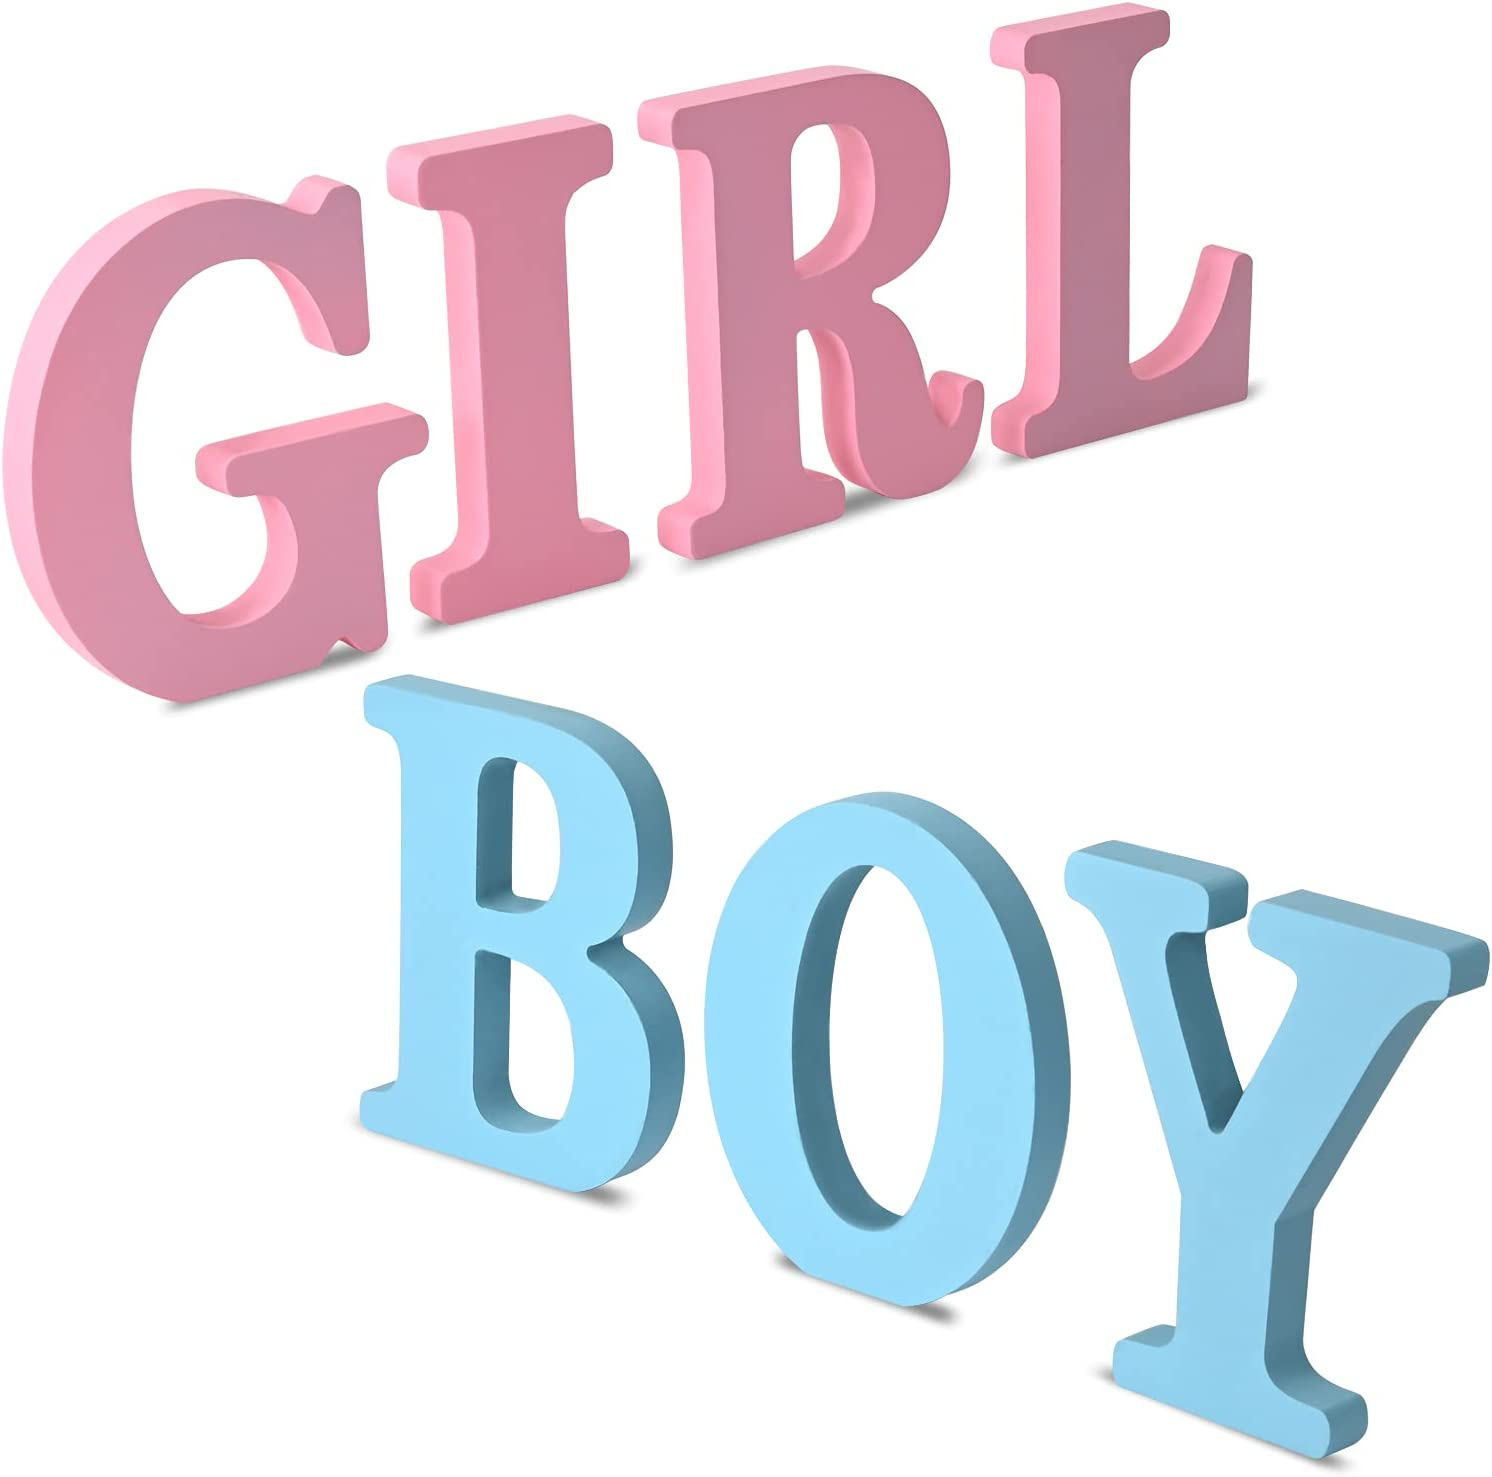 Gender Reveal Table Decorations, Boy Girl Letter Table Signs Blue and Pink Wooden Tabletop Decor for Gender Reveal and Baby Shower Party Supplies